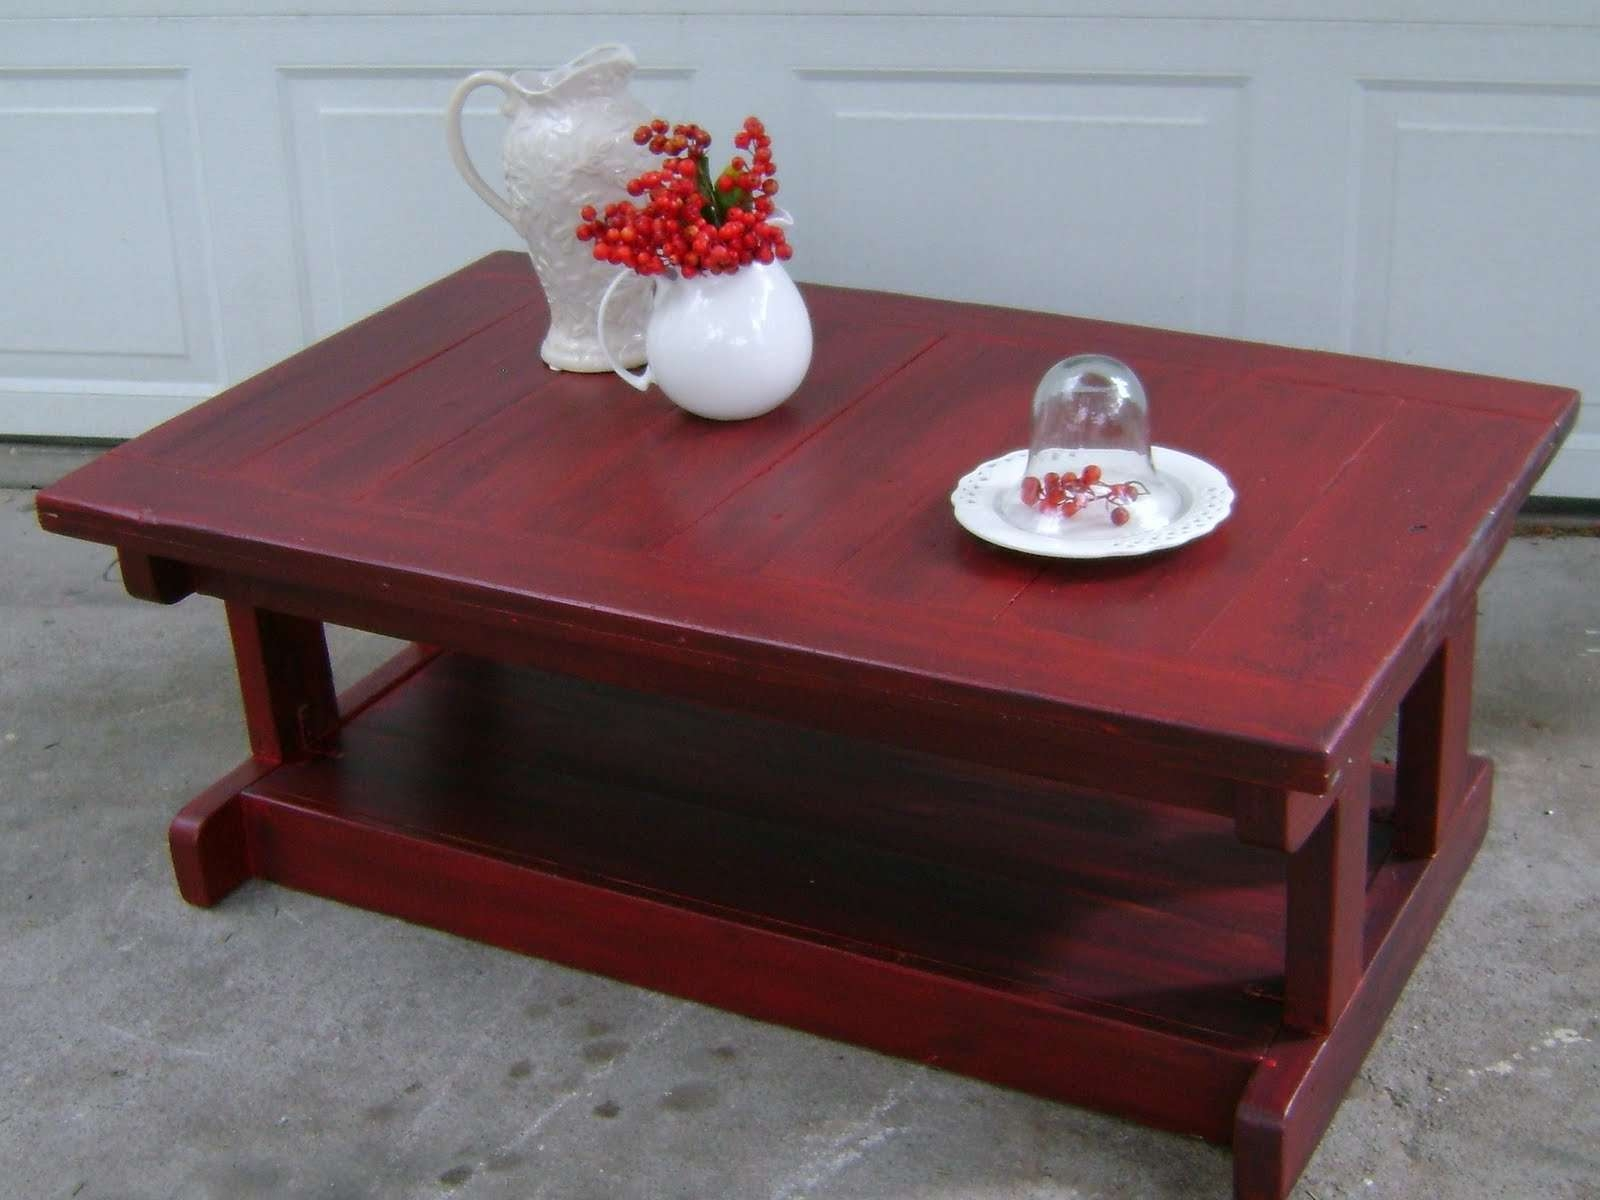 Well Liked Red Coffee Tables Within Red Coffee Tables With Glass Material And Trunk As Storage (View 6 of 20)